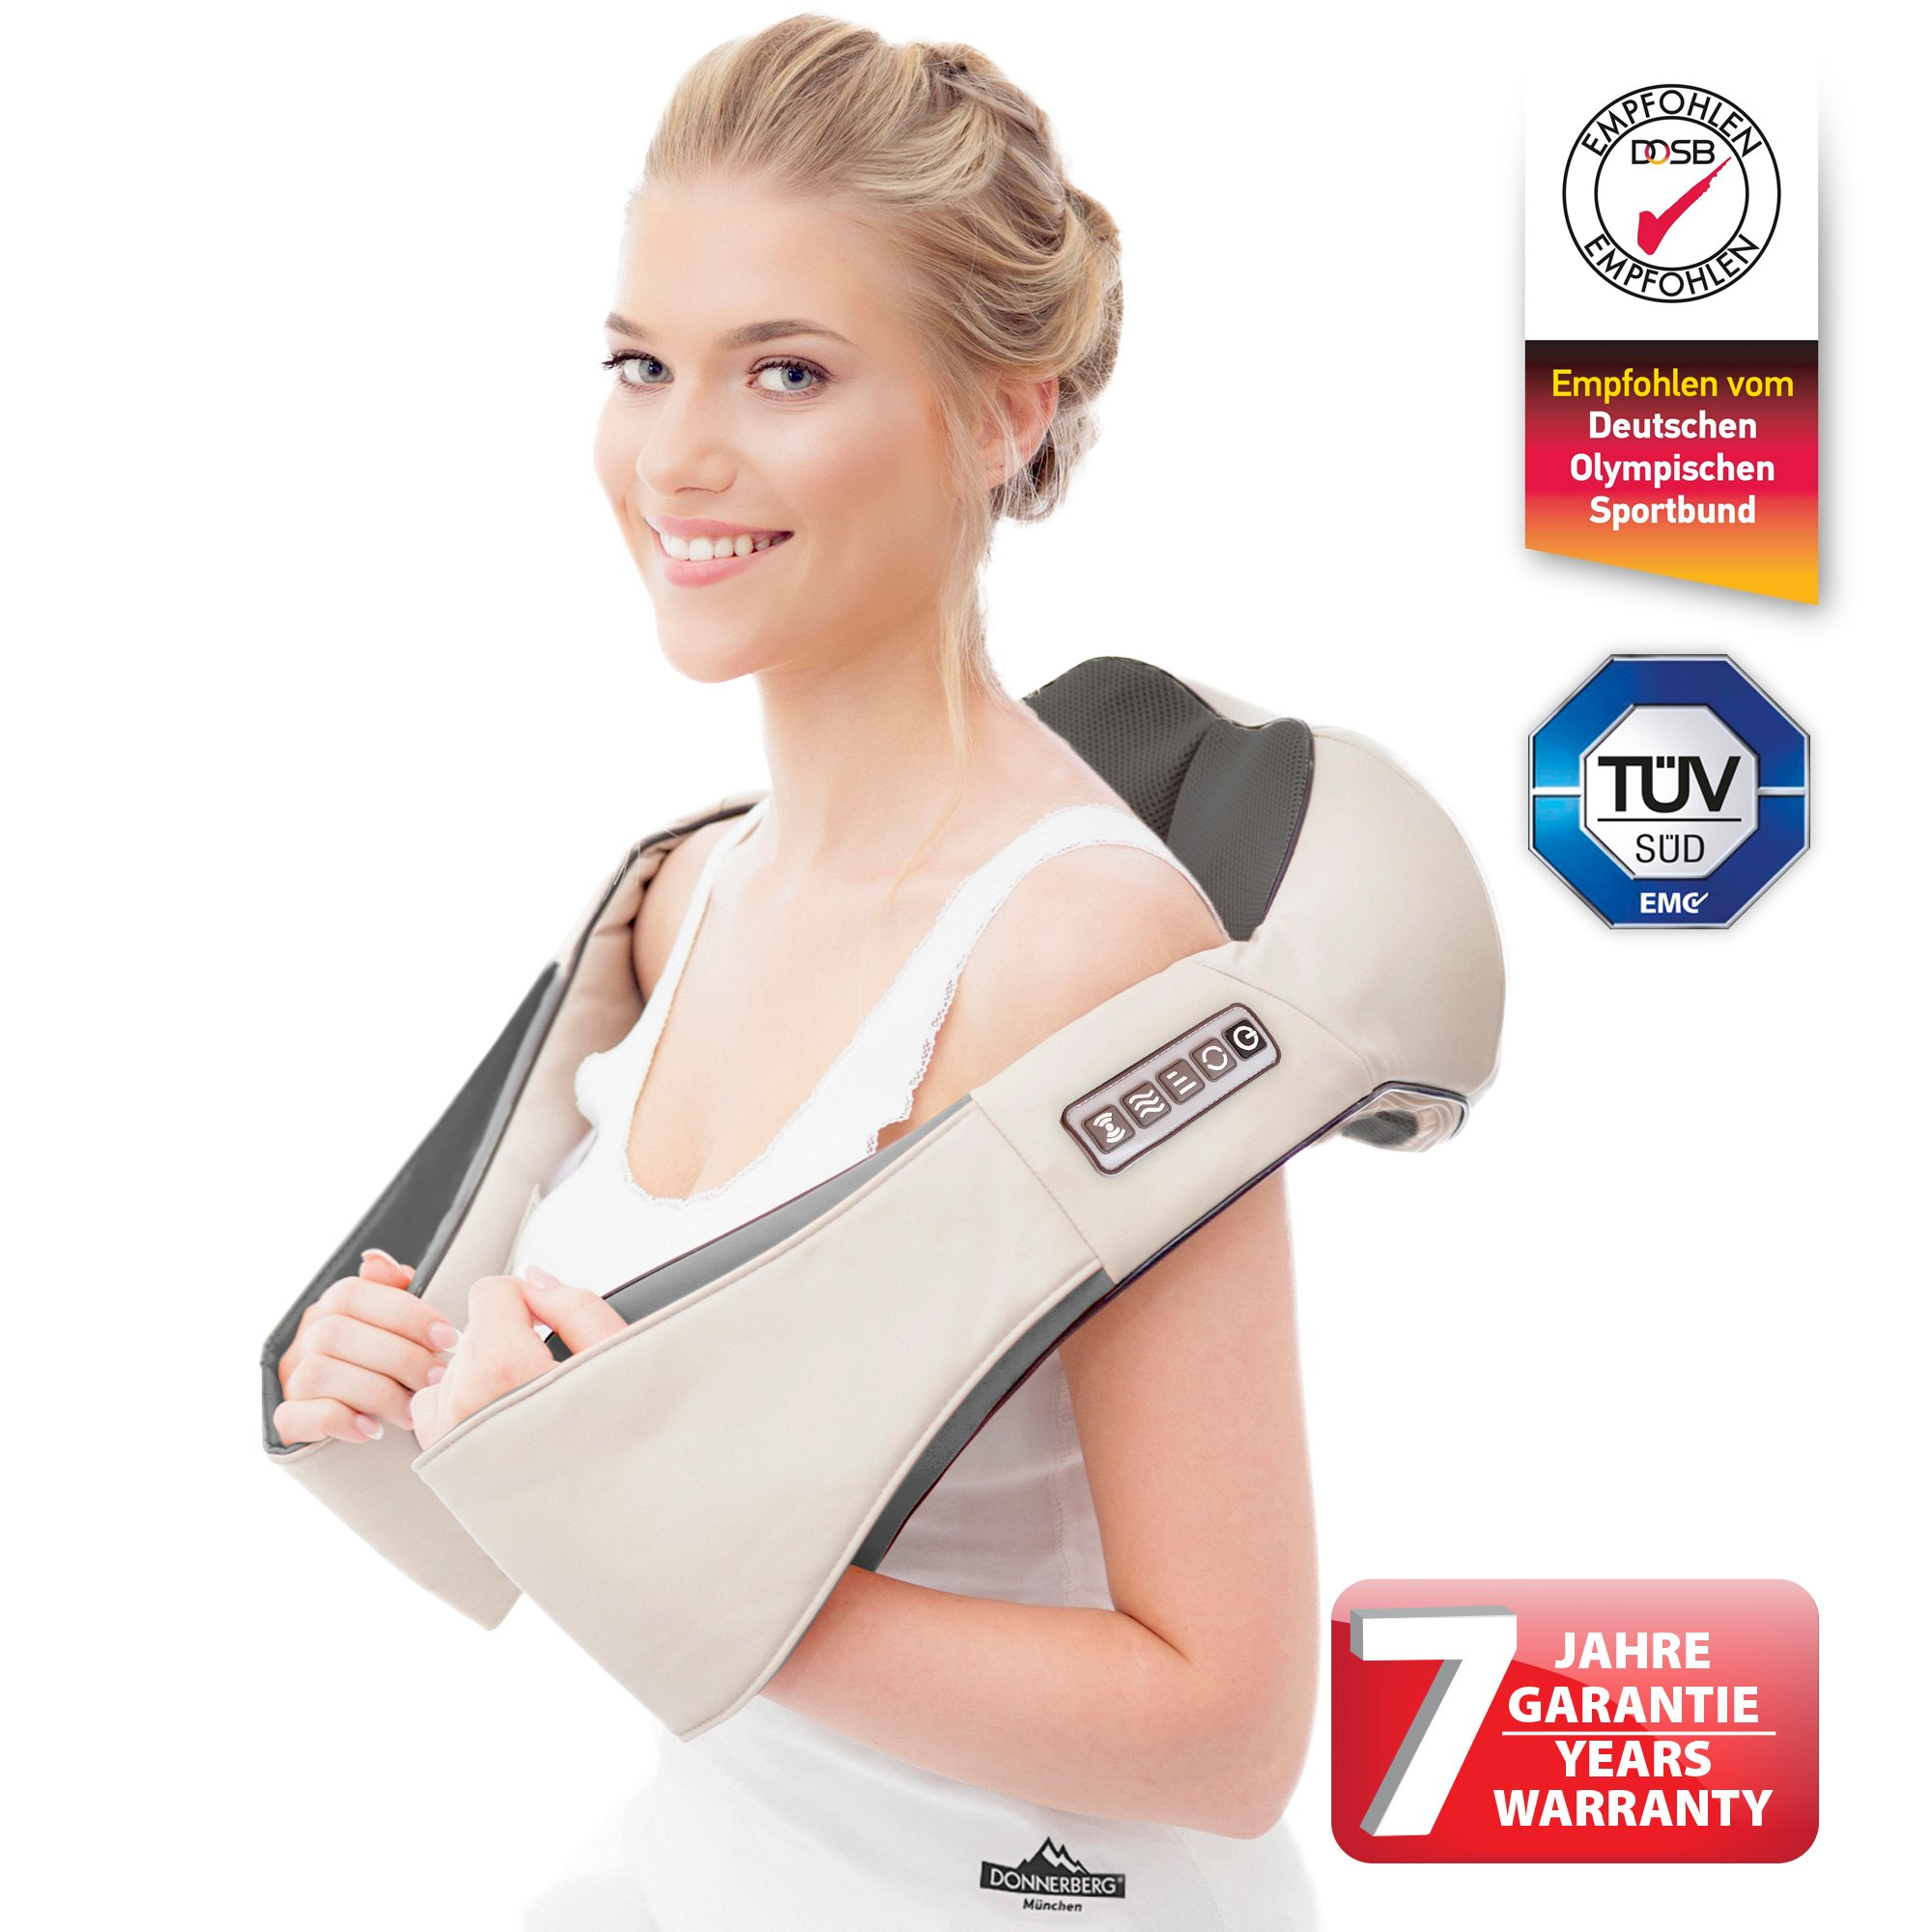 Donnerberg ® back and neck massager with infrared heat – Premium German brand – 7 years warranty – adjustable functions – massage for home, office, car use